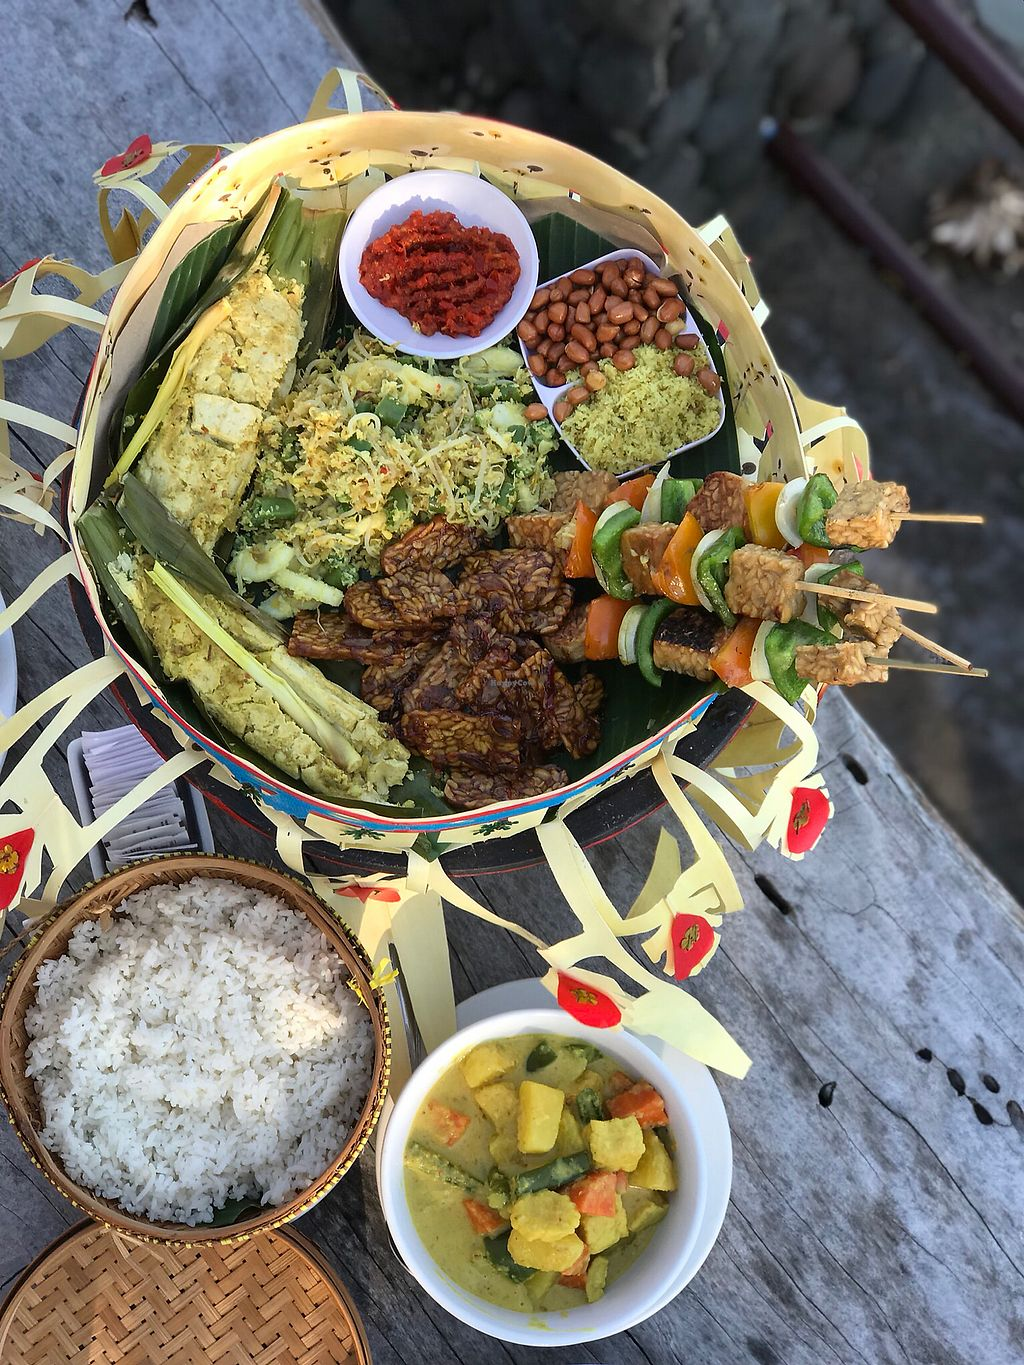 """Photo of Amarta Beach Cottage  by <a href=""""/members/profile/joooaaaann"""">joooaaaann</a> <br/>Vegan fest for two (incl. soup and dessert), 250k RP <br/> April 19, 2018  - <a href='/contact/abuse/image/91693/387875'>Report</a>"""